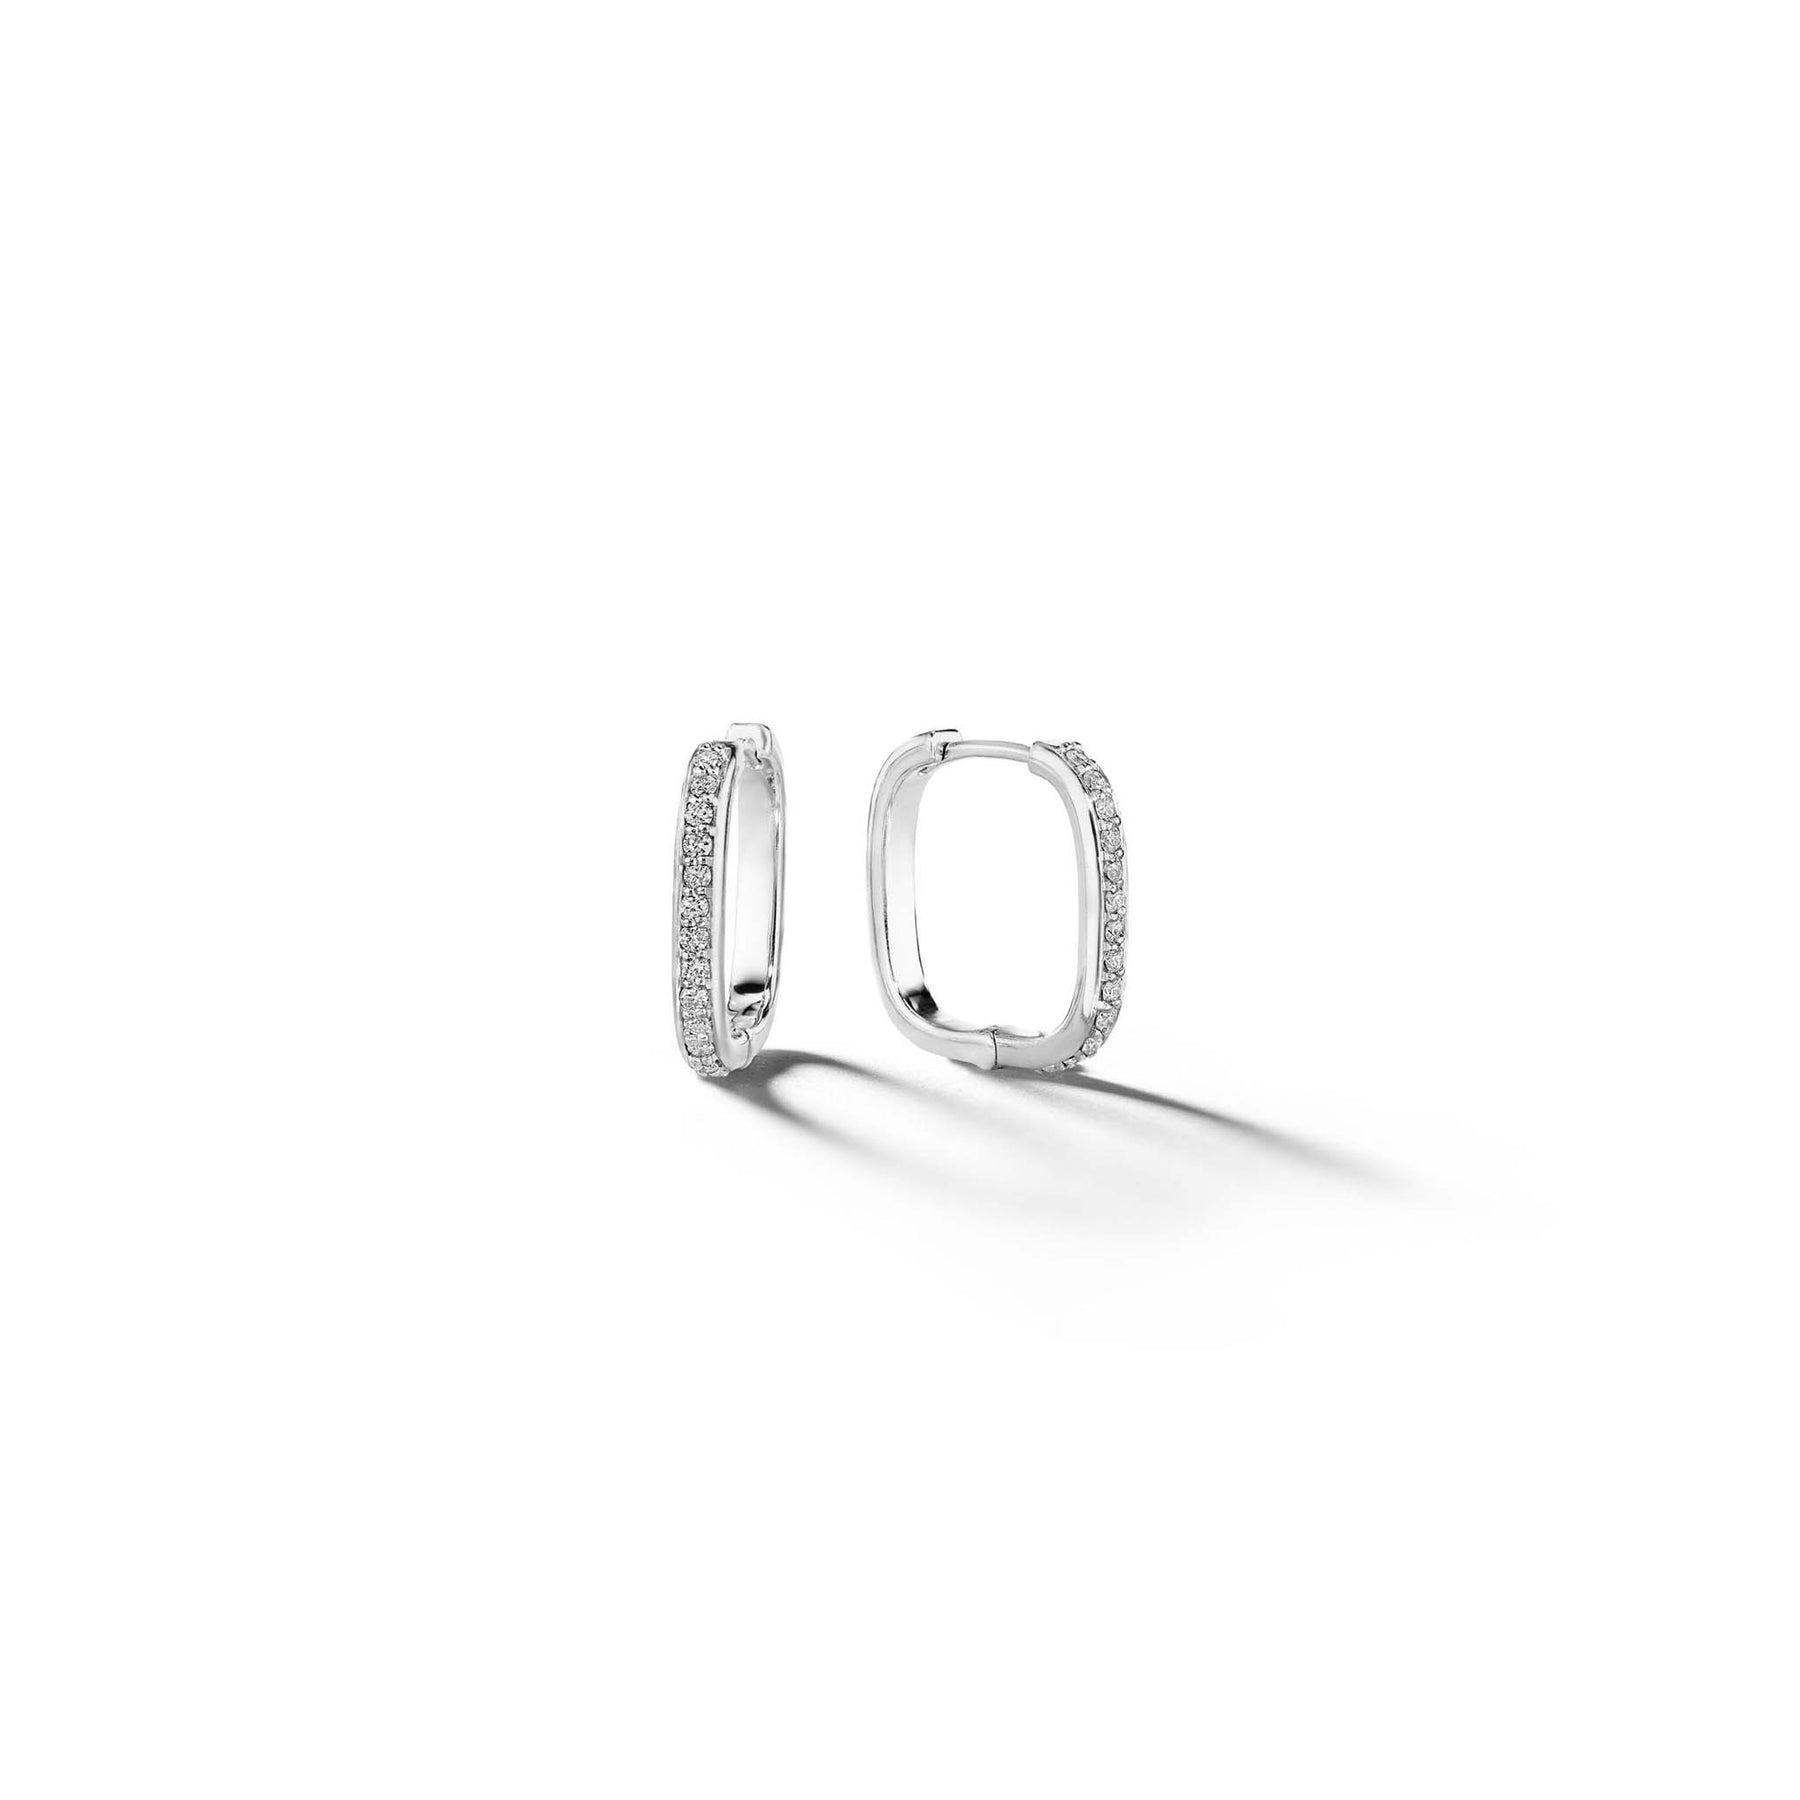 Mimi So Piece Square Hoop Earrings_18k White Gold